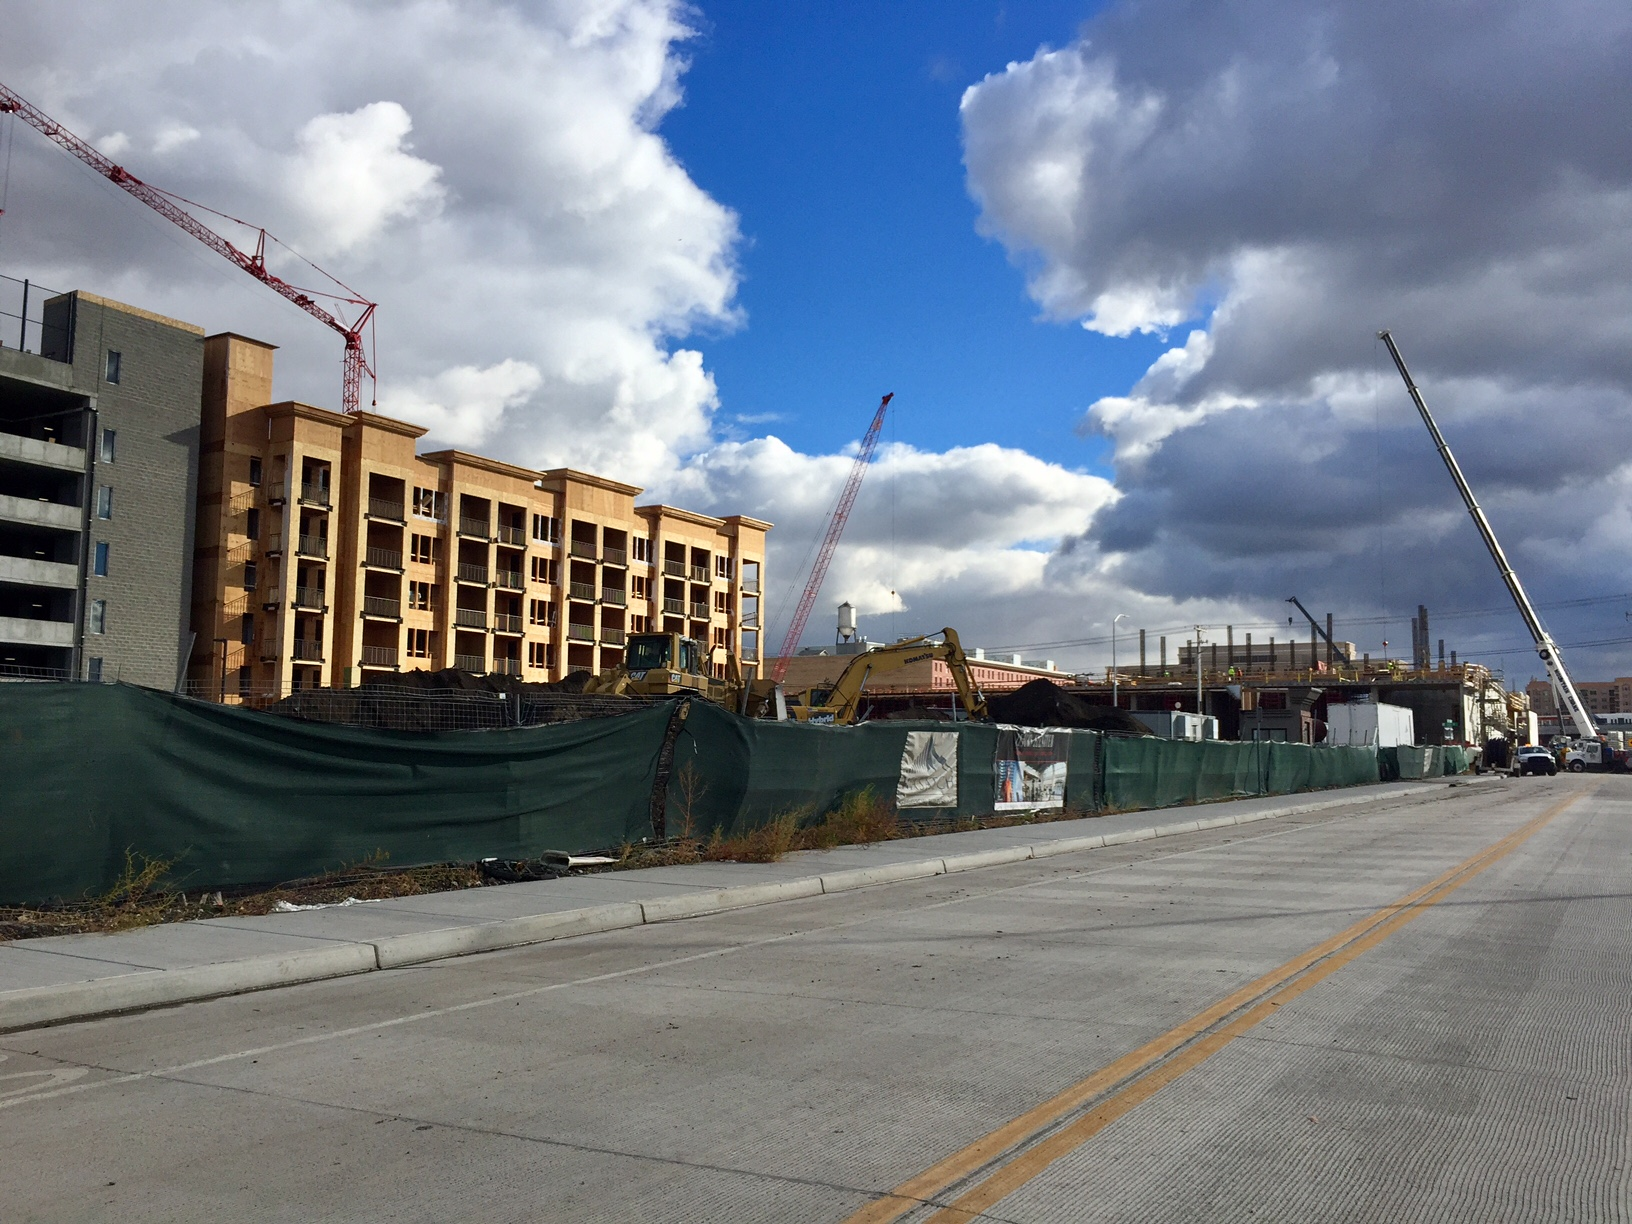 4th-west-apartments-11-21-16-2